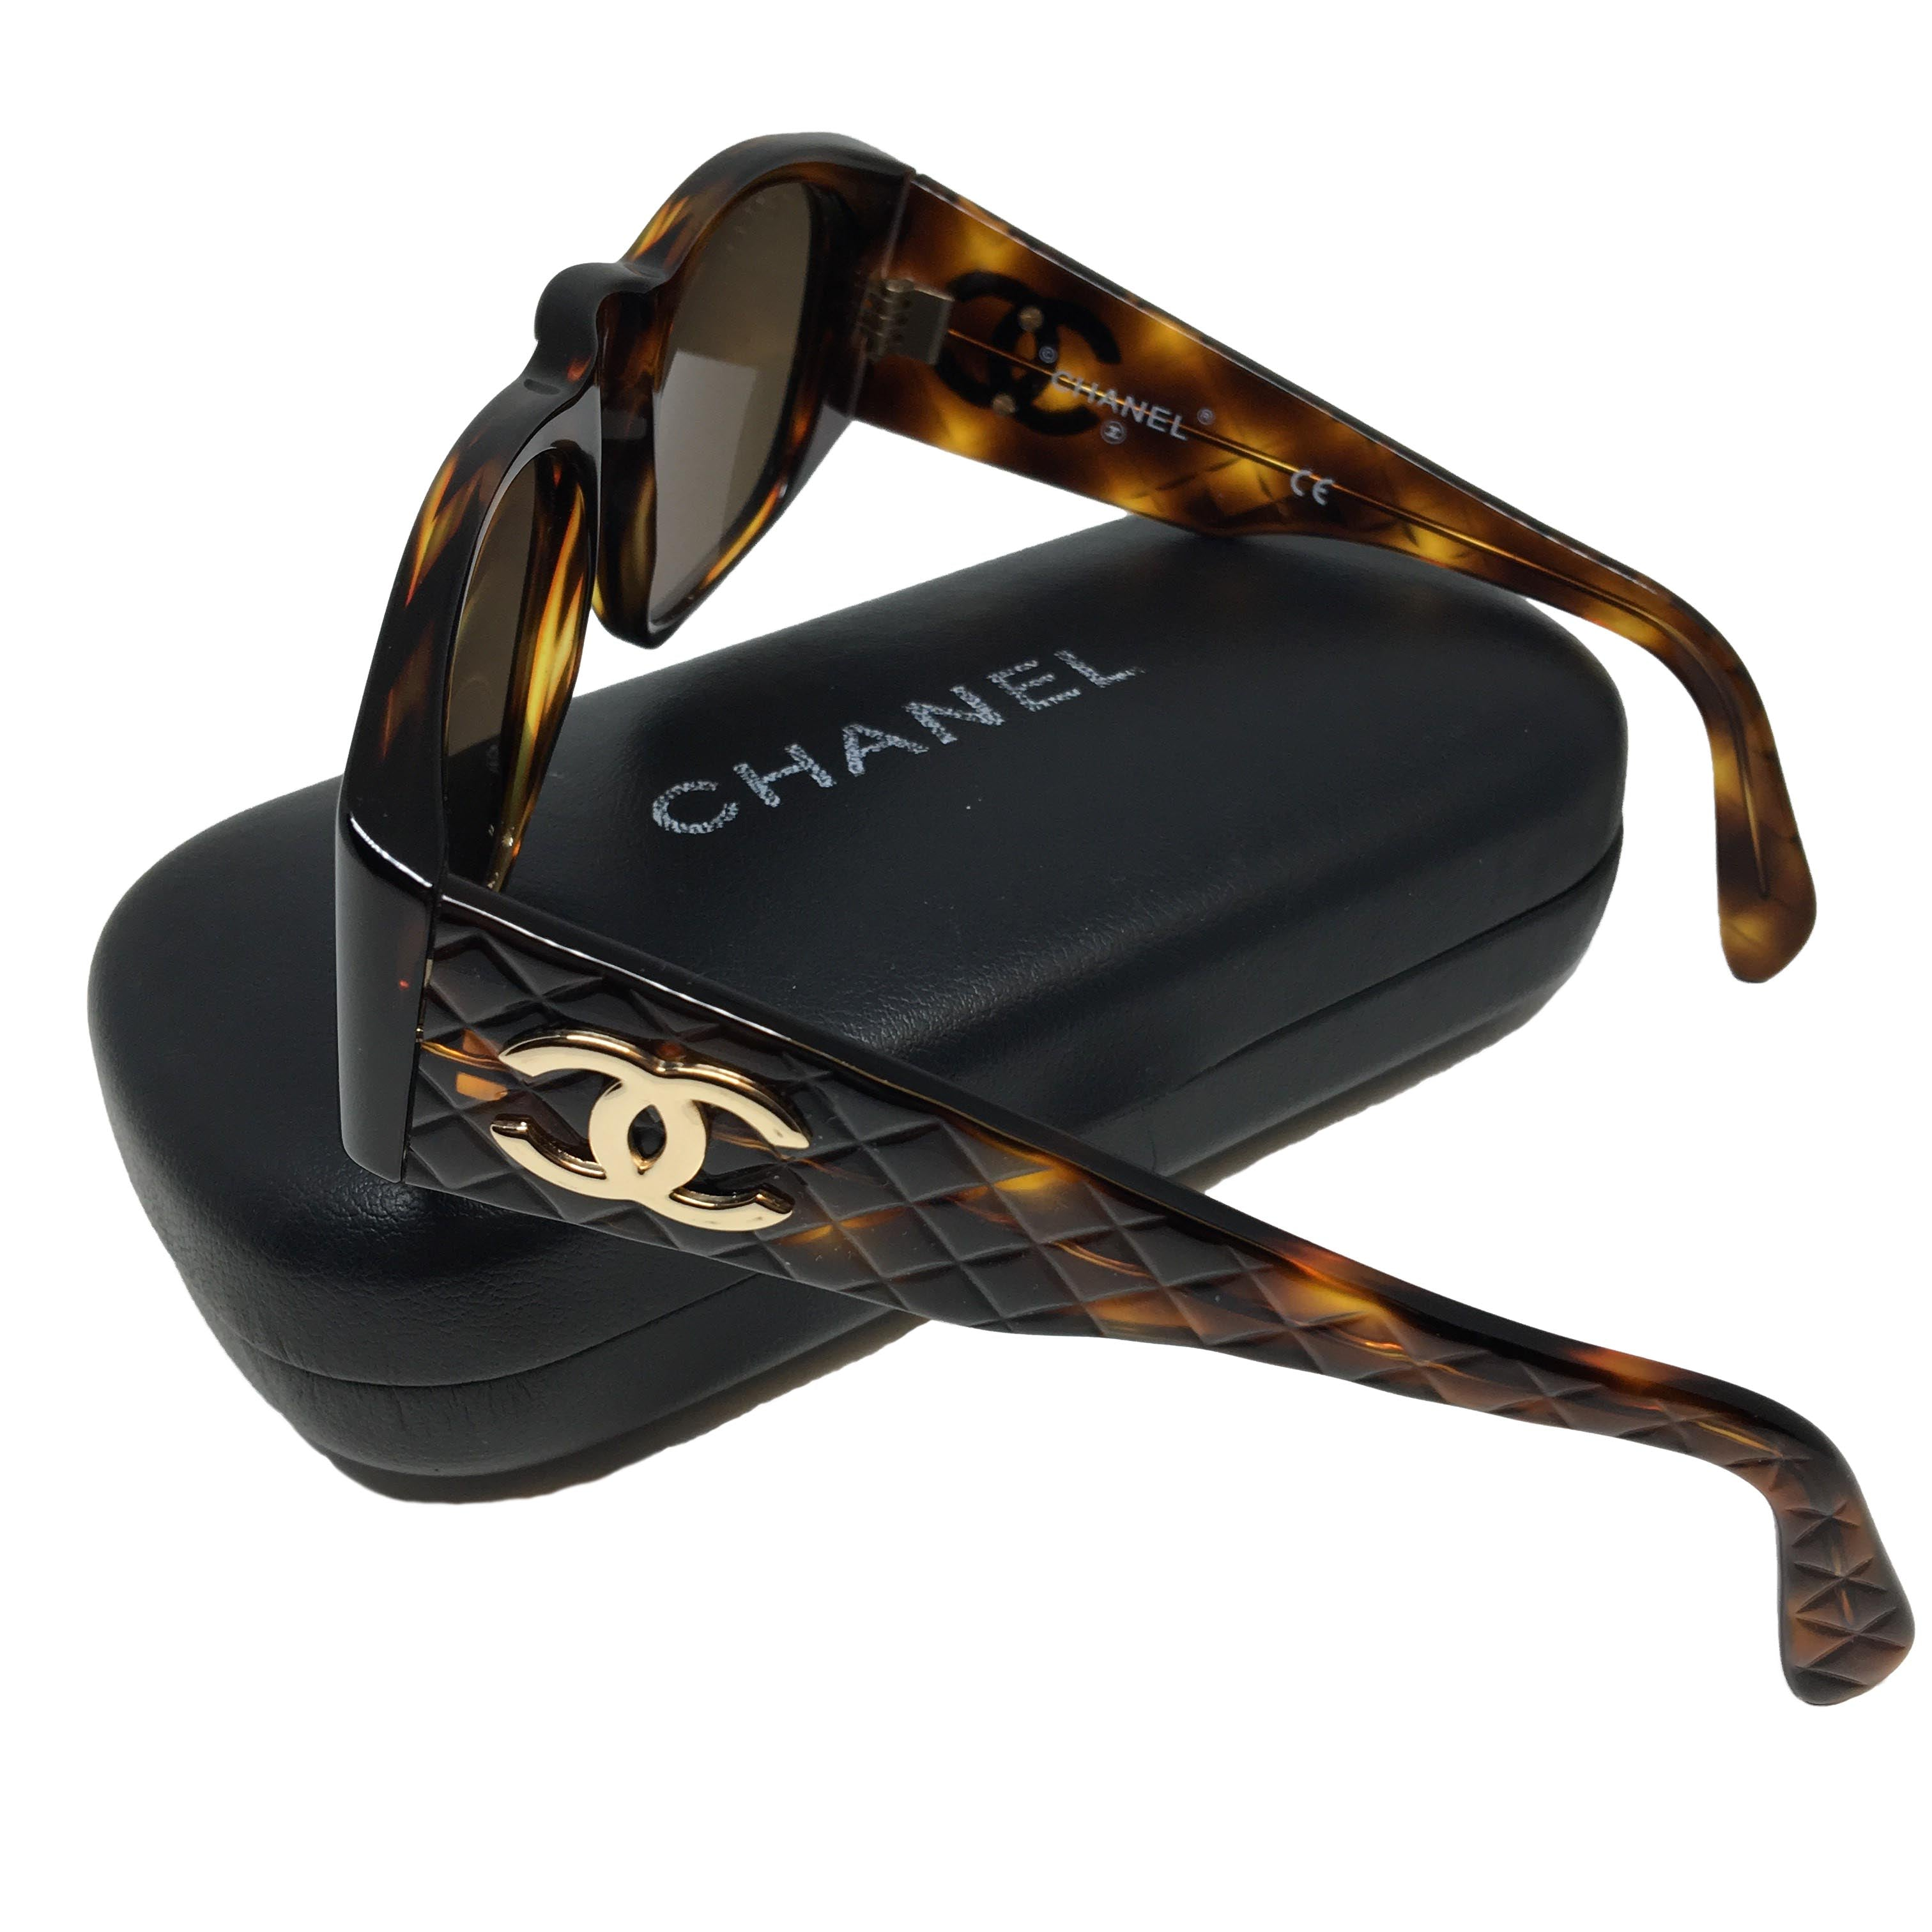 cc3d959b0159 CHANEL tortoise shell sunglasses with CC logo on quilted arms - The ...